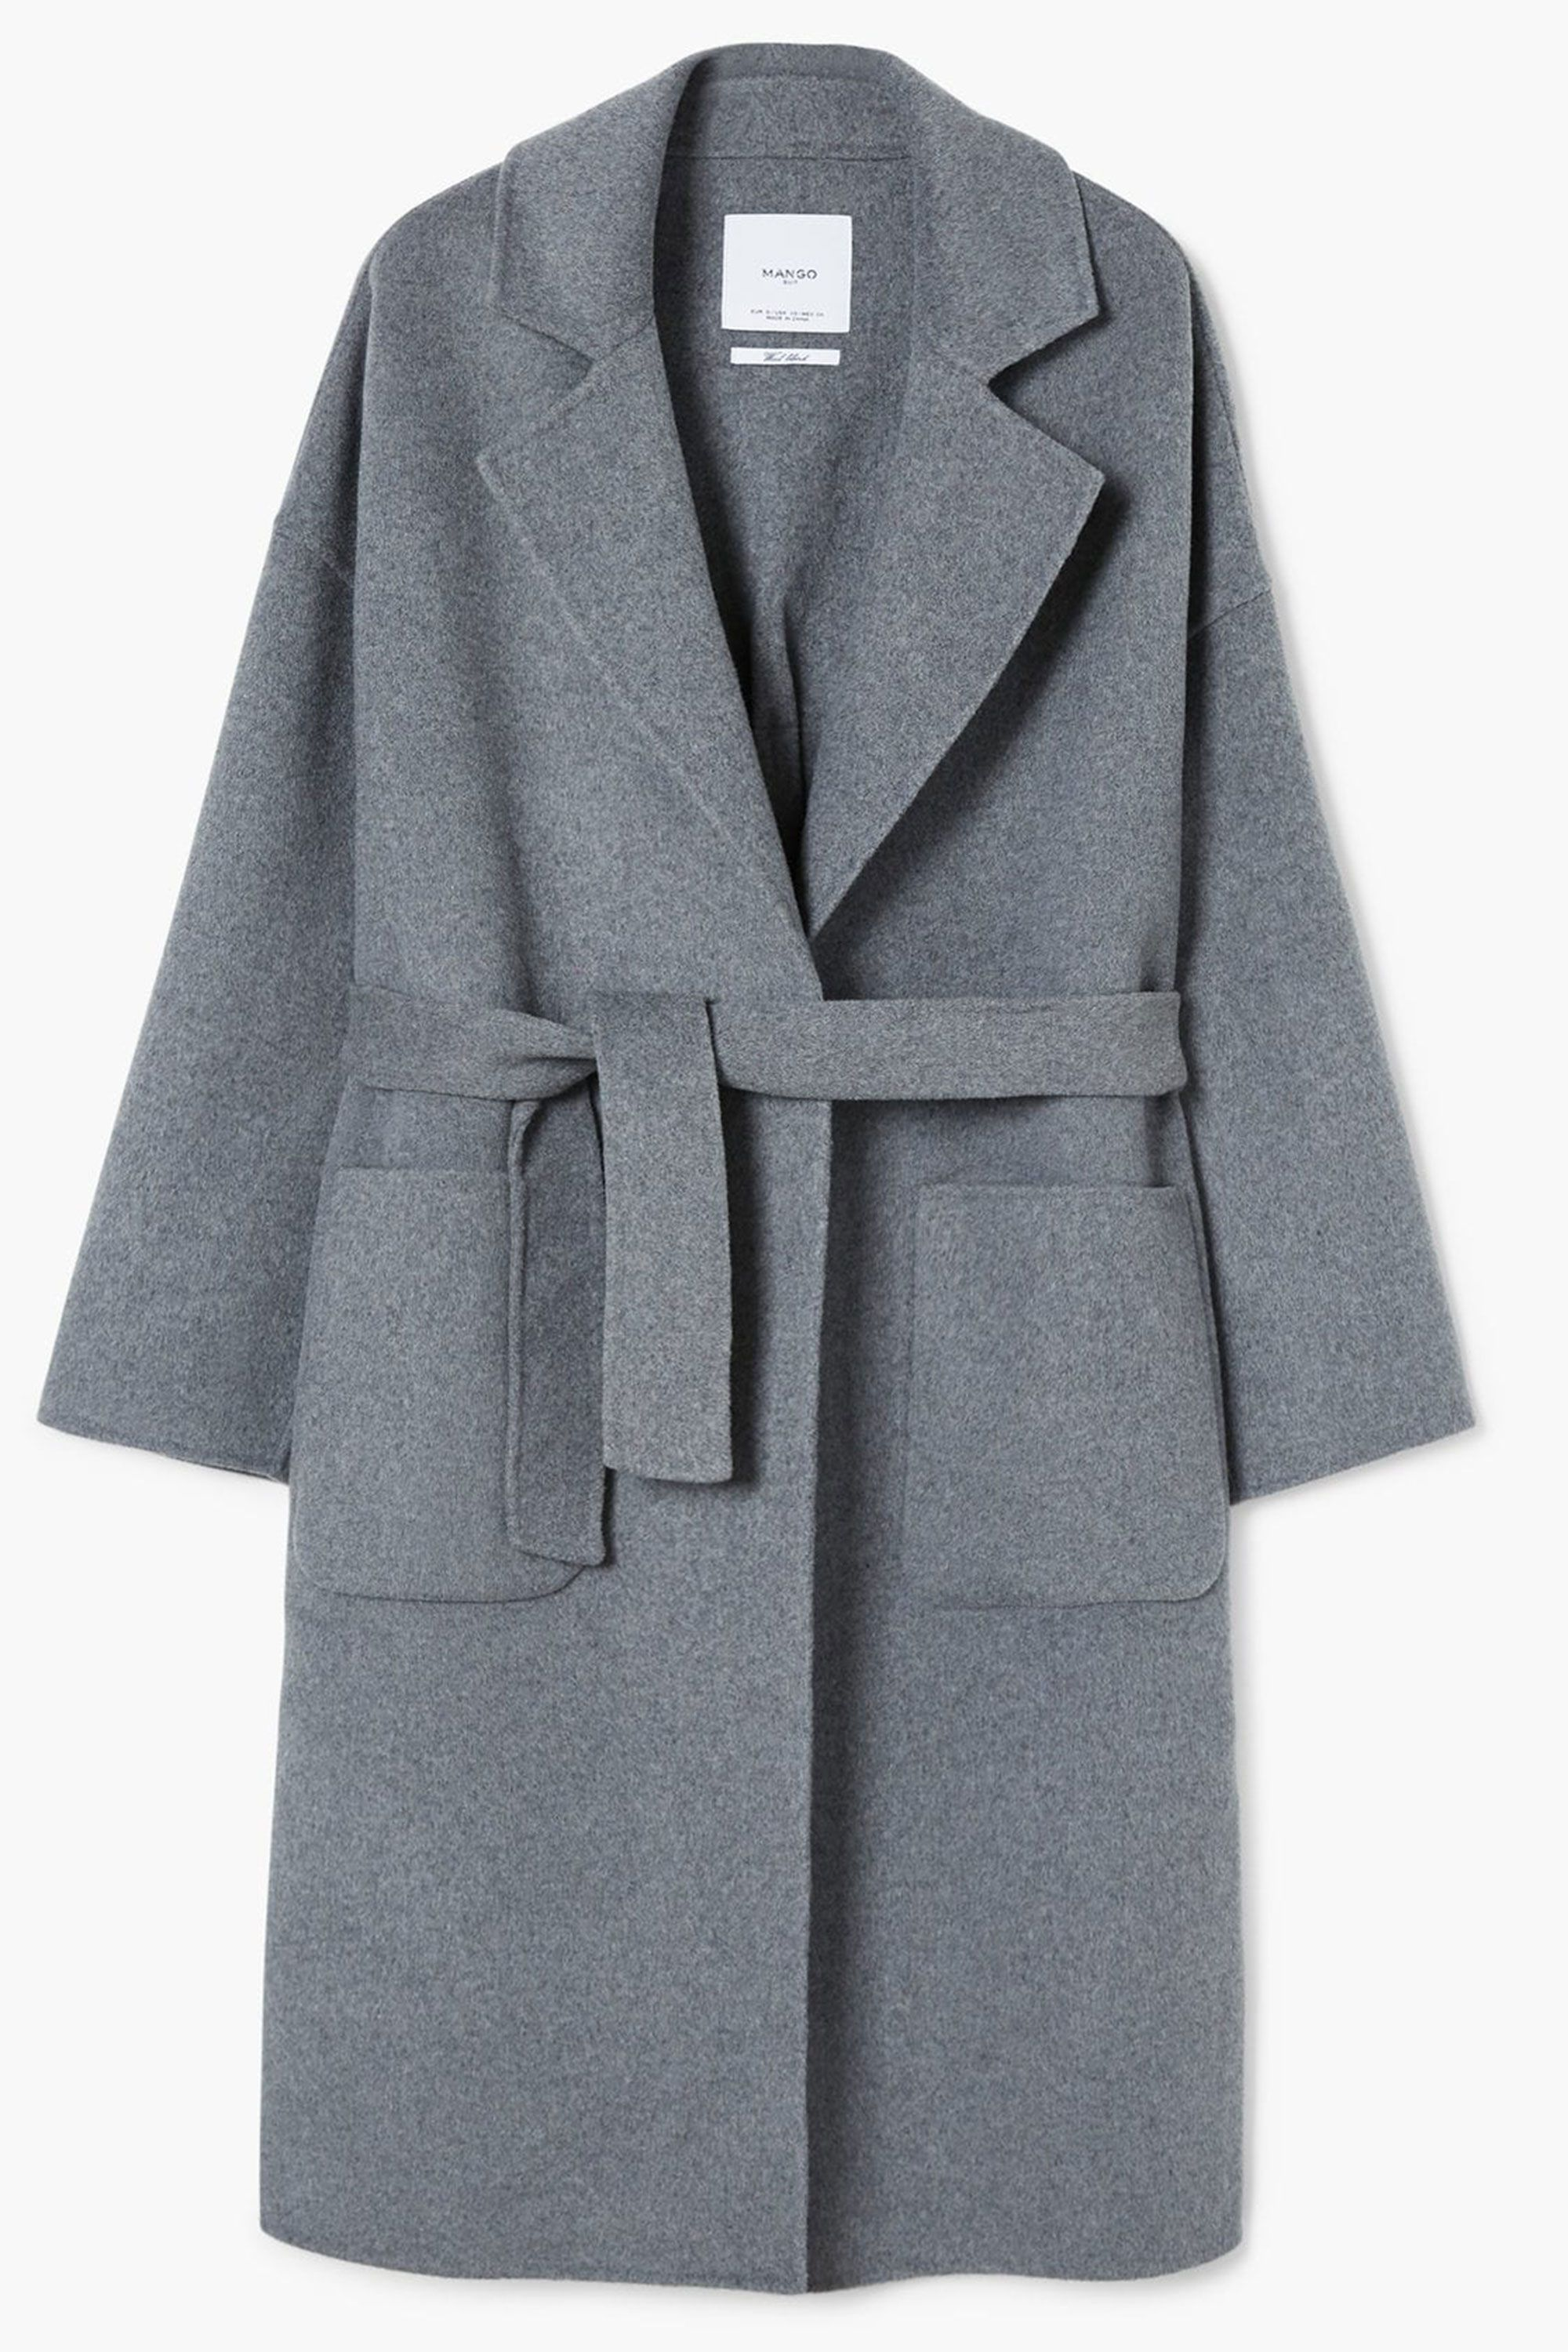 d8afe8209 Best winter coats 2019 – The best fall coats to buy now